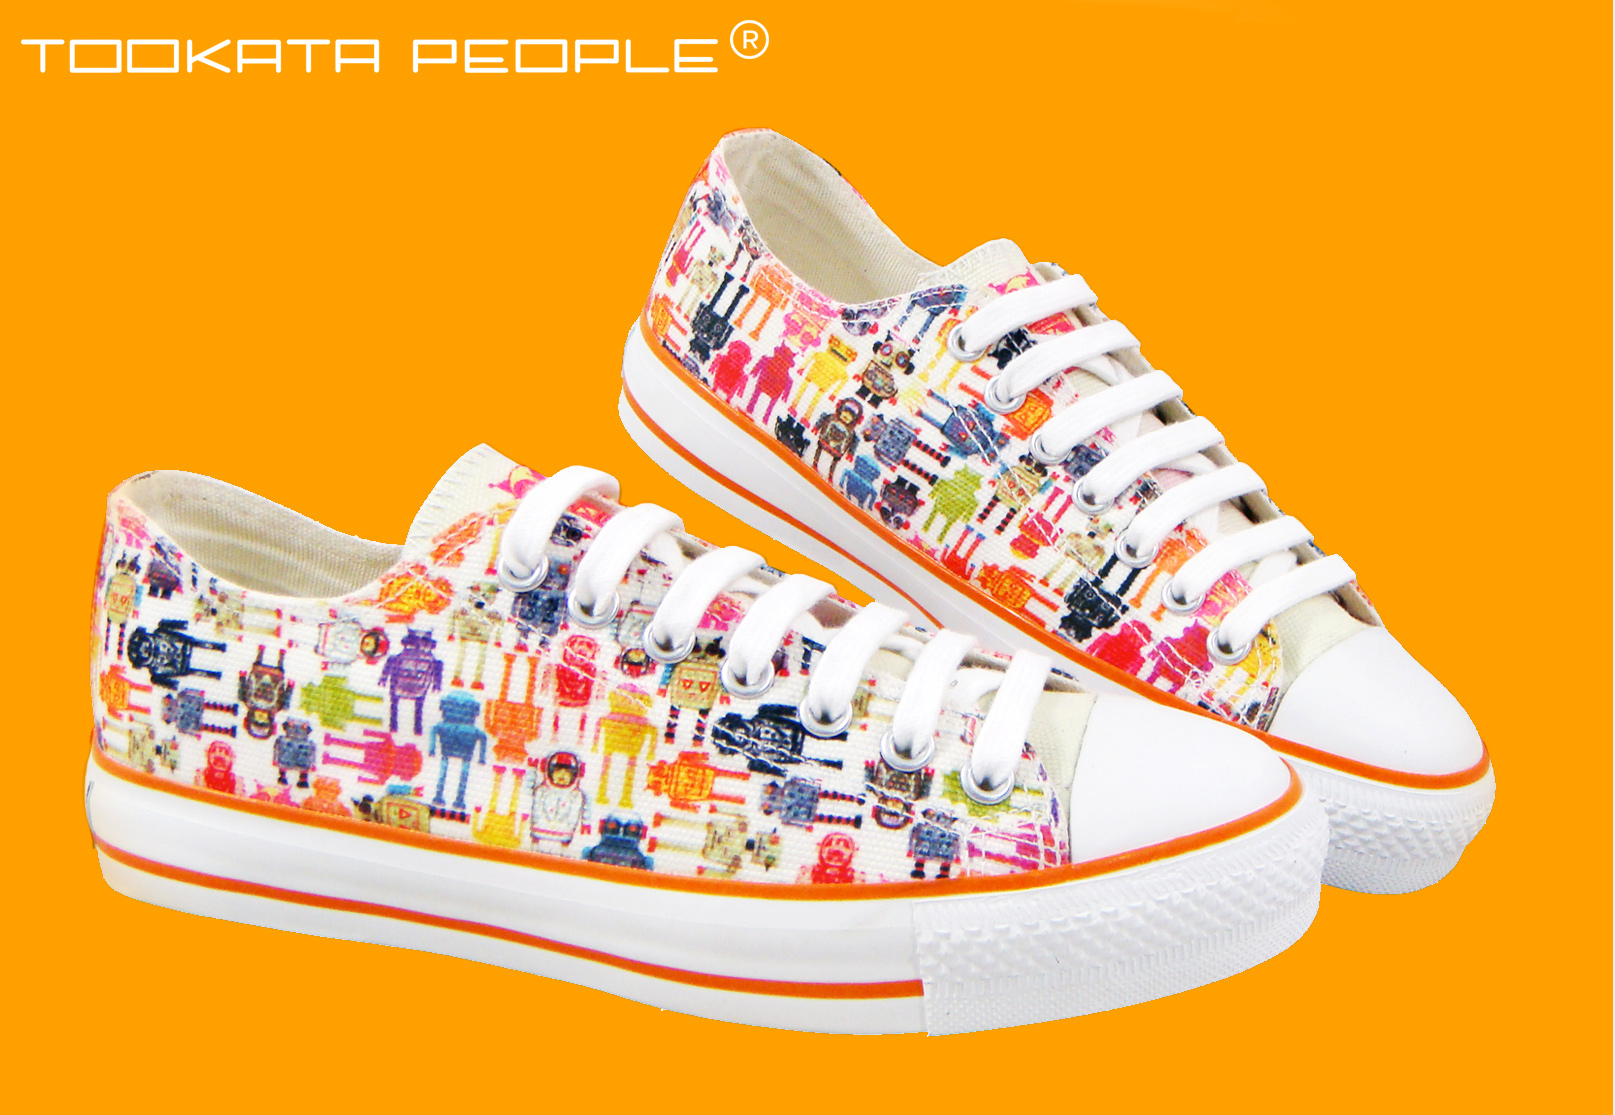 - California based fashion label Tookata People used my surface patterns for their men's and women's range of hi and lo top sneakers for 2 seasons.